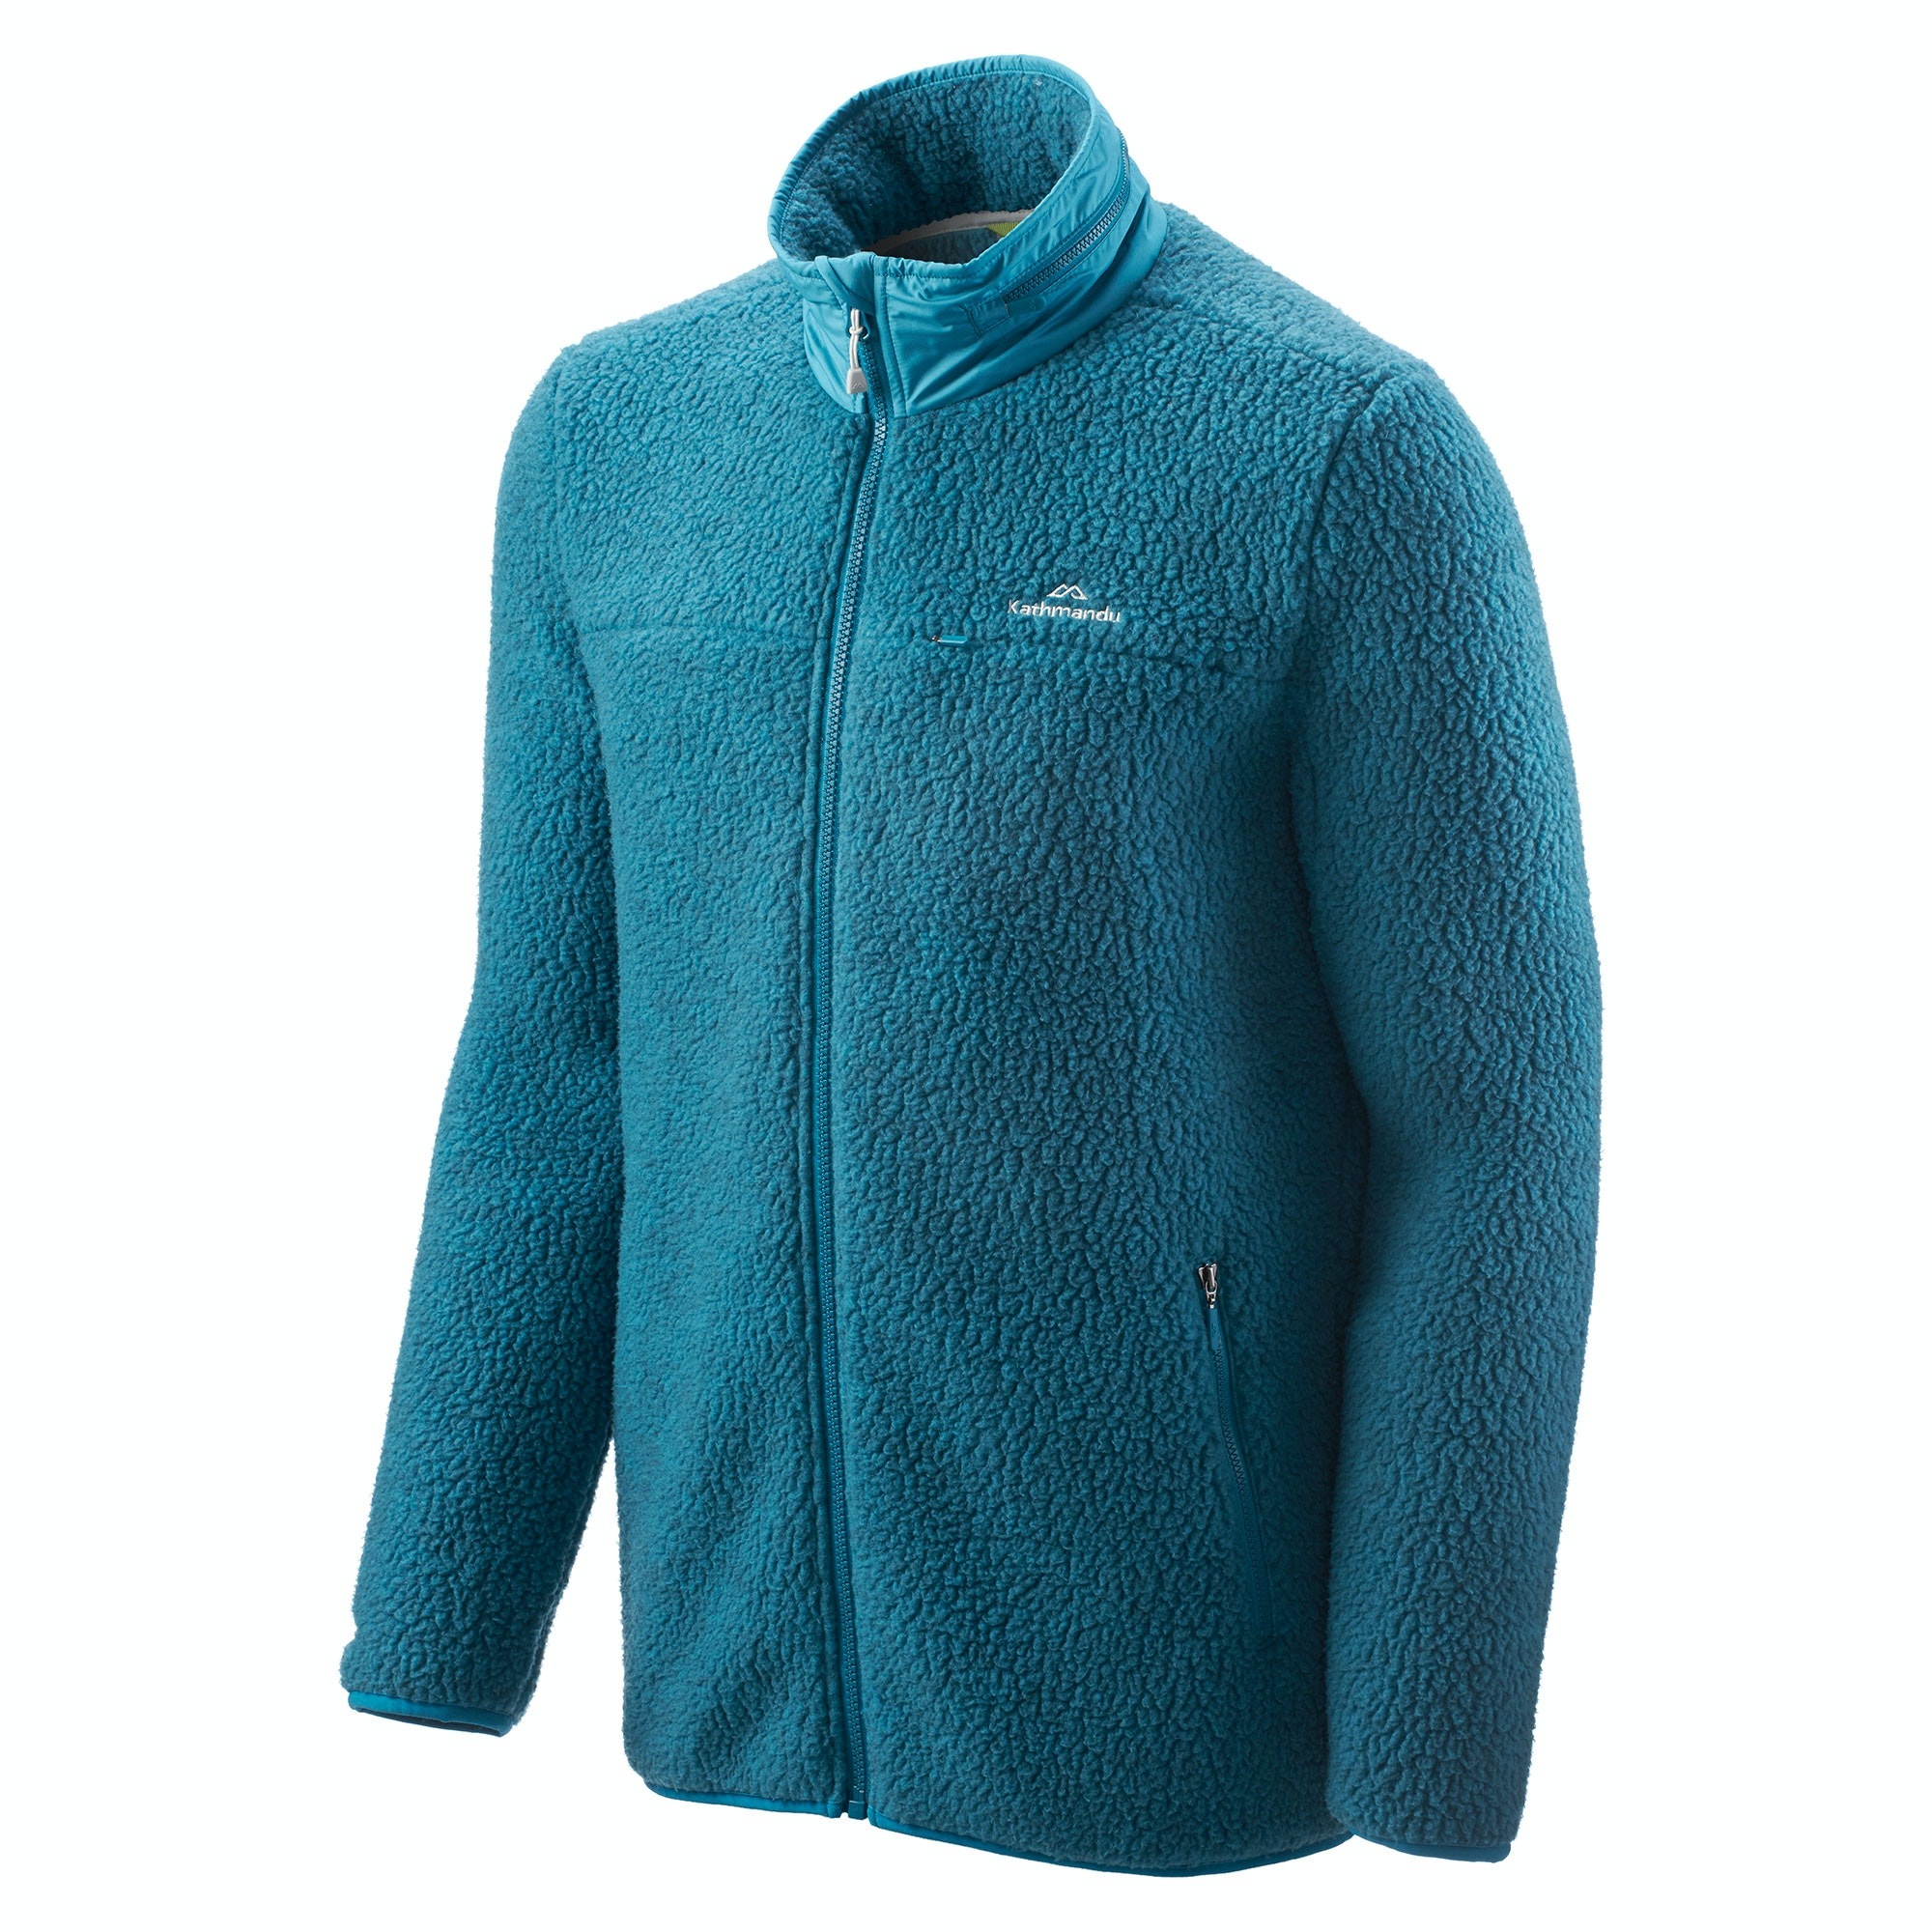 NEW-Kathmandu-Baffin-Island-Men-039-s-Full-Zip-Hooded-Warm-Outdoor-Fleece-Jacket thumbnail 10